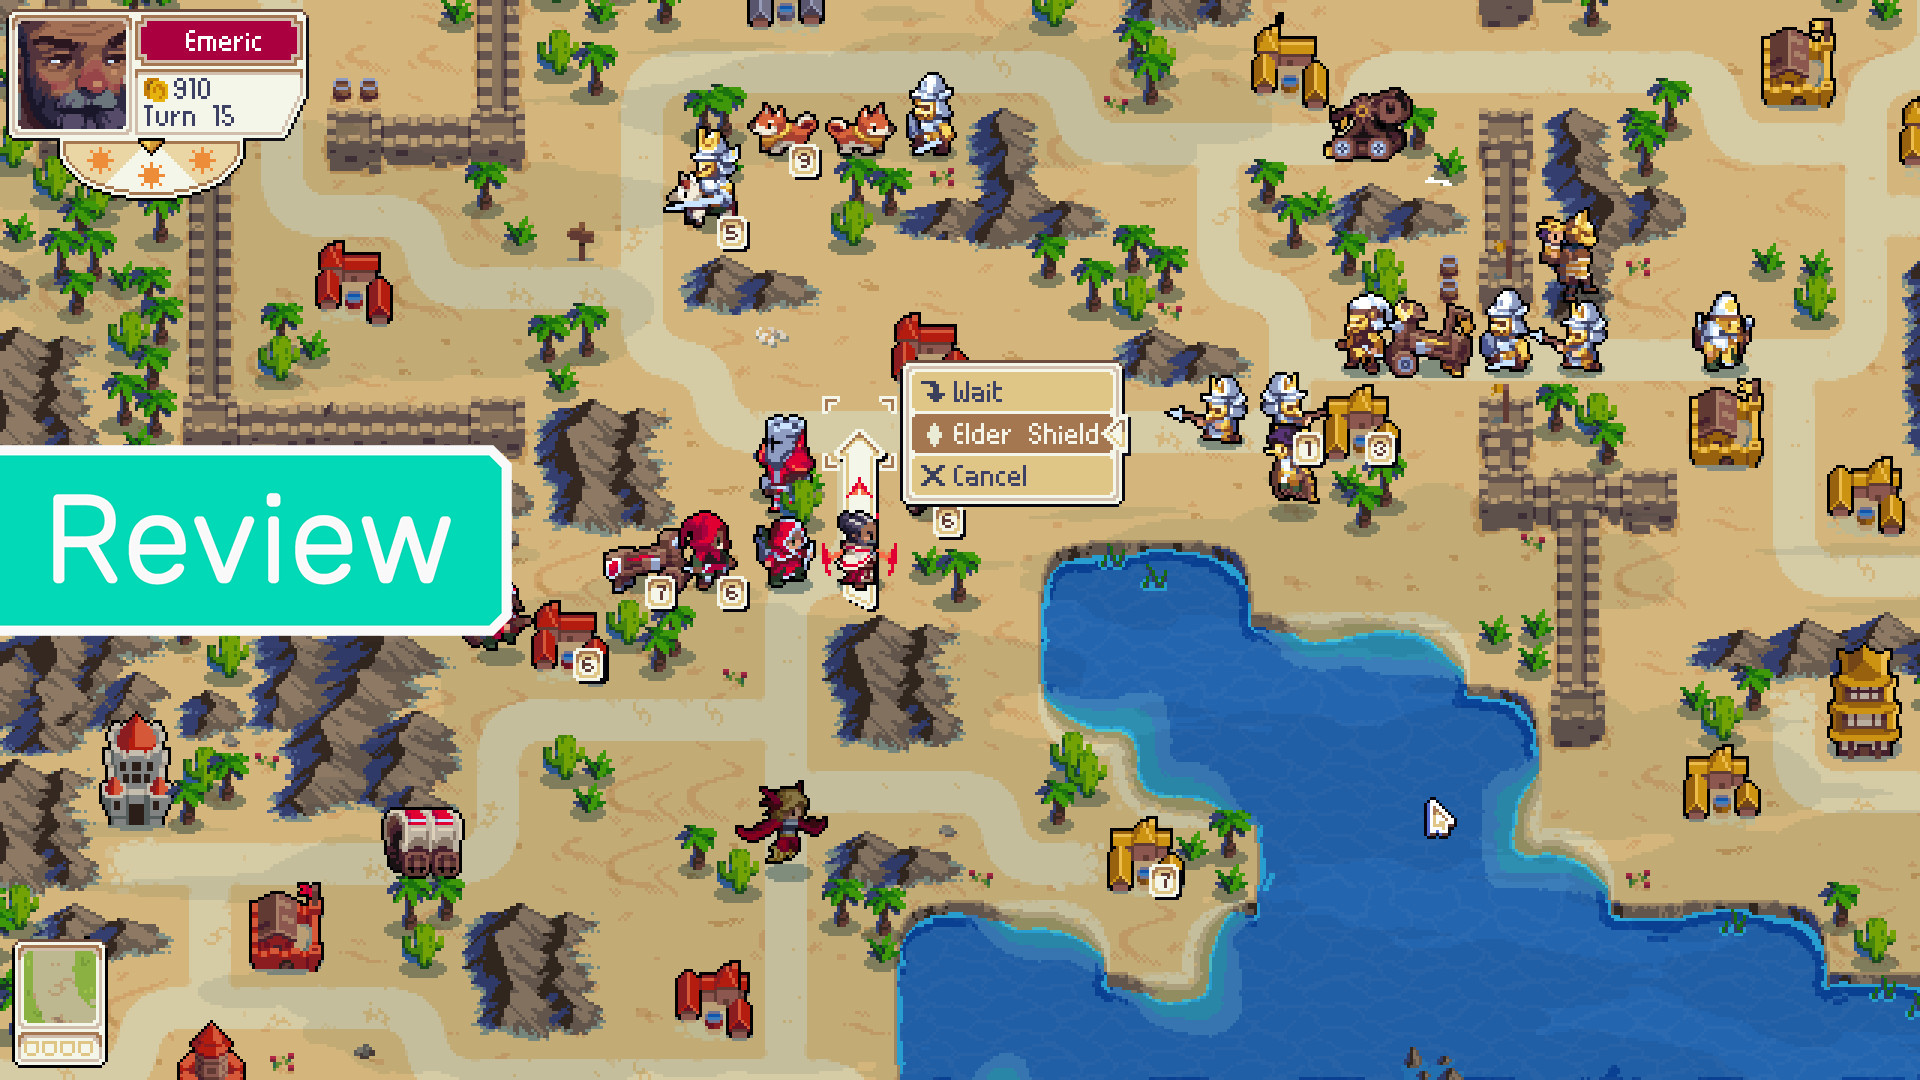 1920x1080 For Desperate Advance Wars Fans, 'Wargroove' Proves a Suitable Successor -  Waypoint